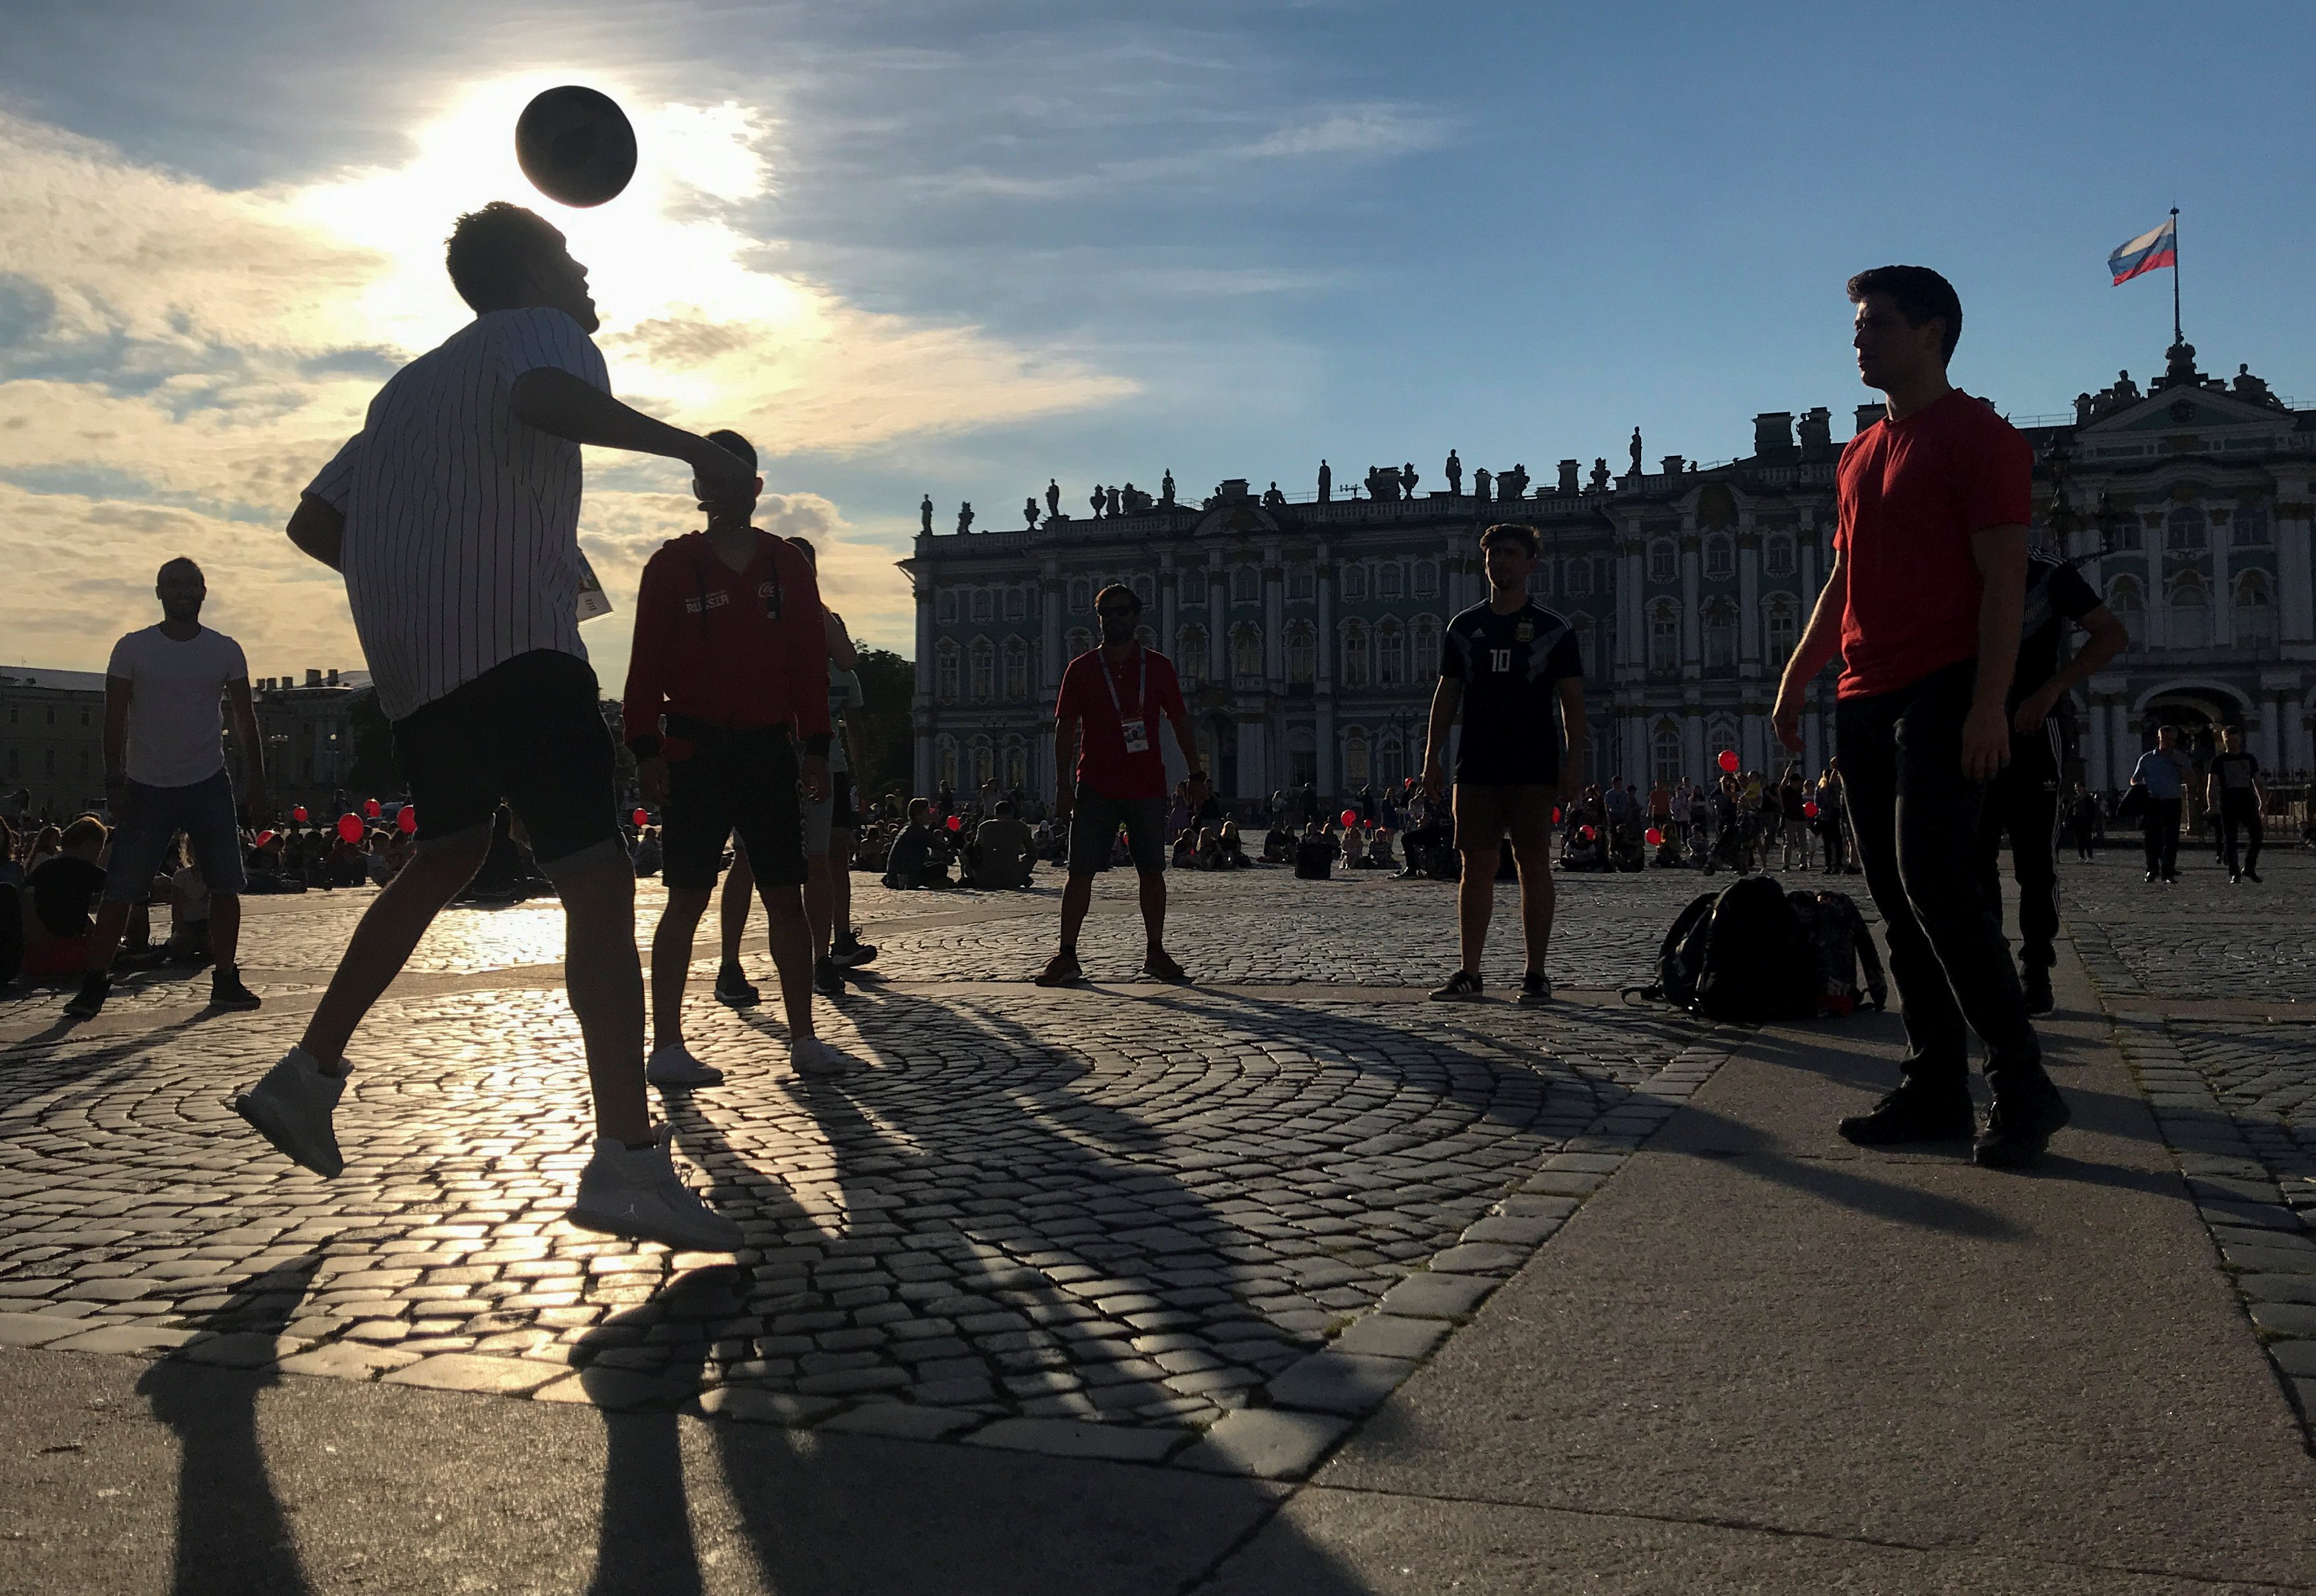 People play soccer at Palace Square with Hermitage Museum in the background in Saint Petersburg, Russia, July 11, 2018. As we